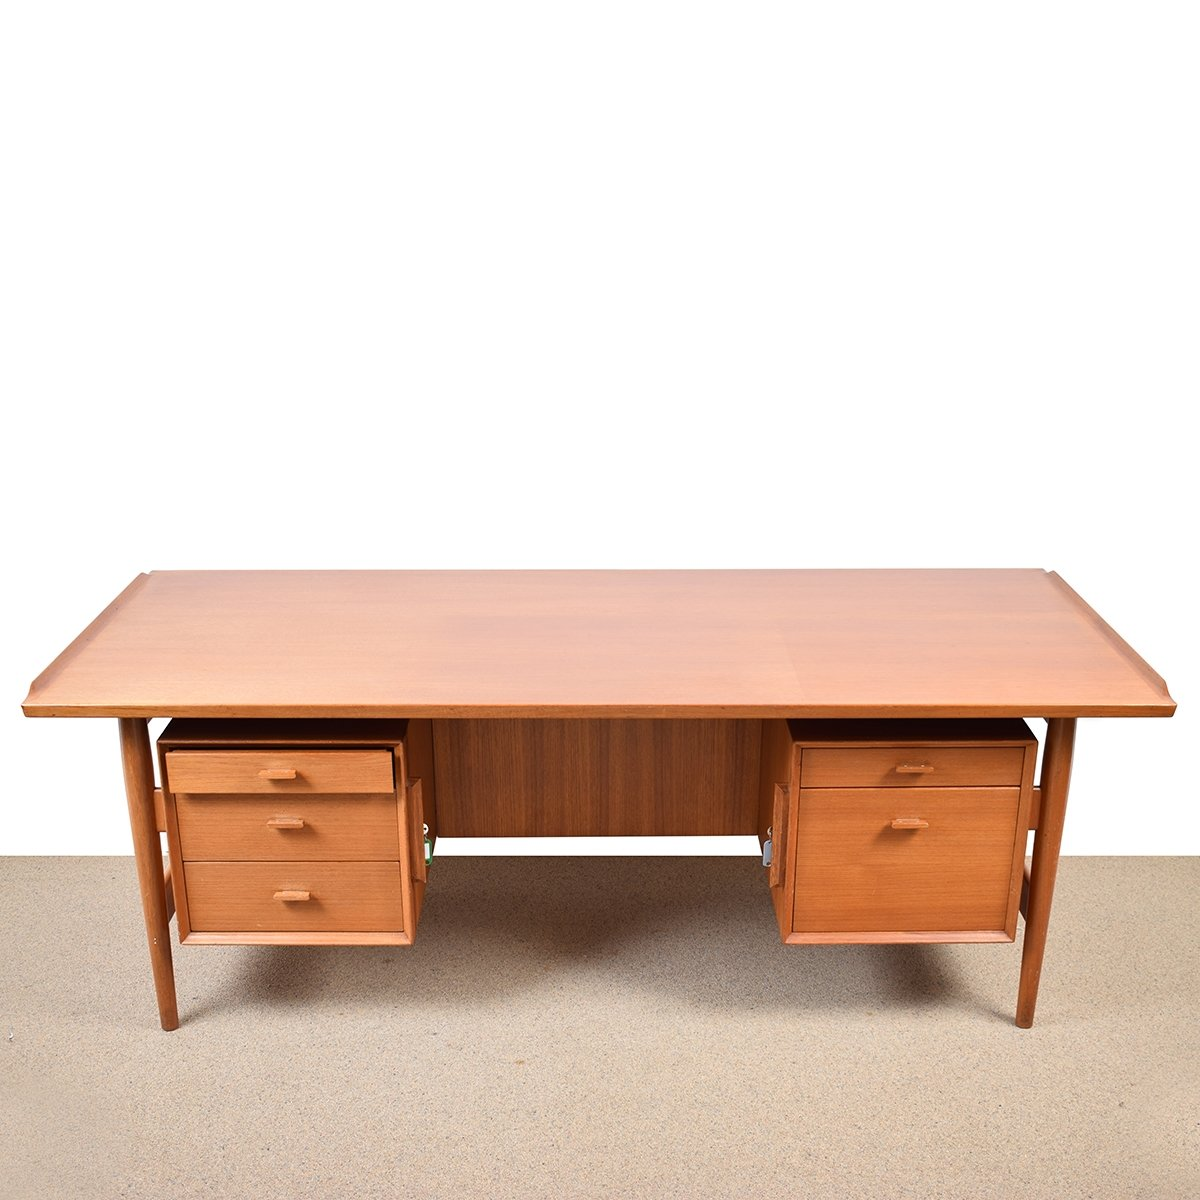 front tables mid viyet desk designer century tab modern teak danish furniture